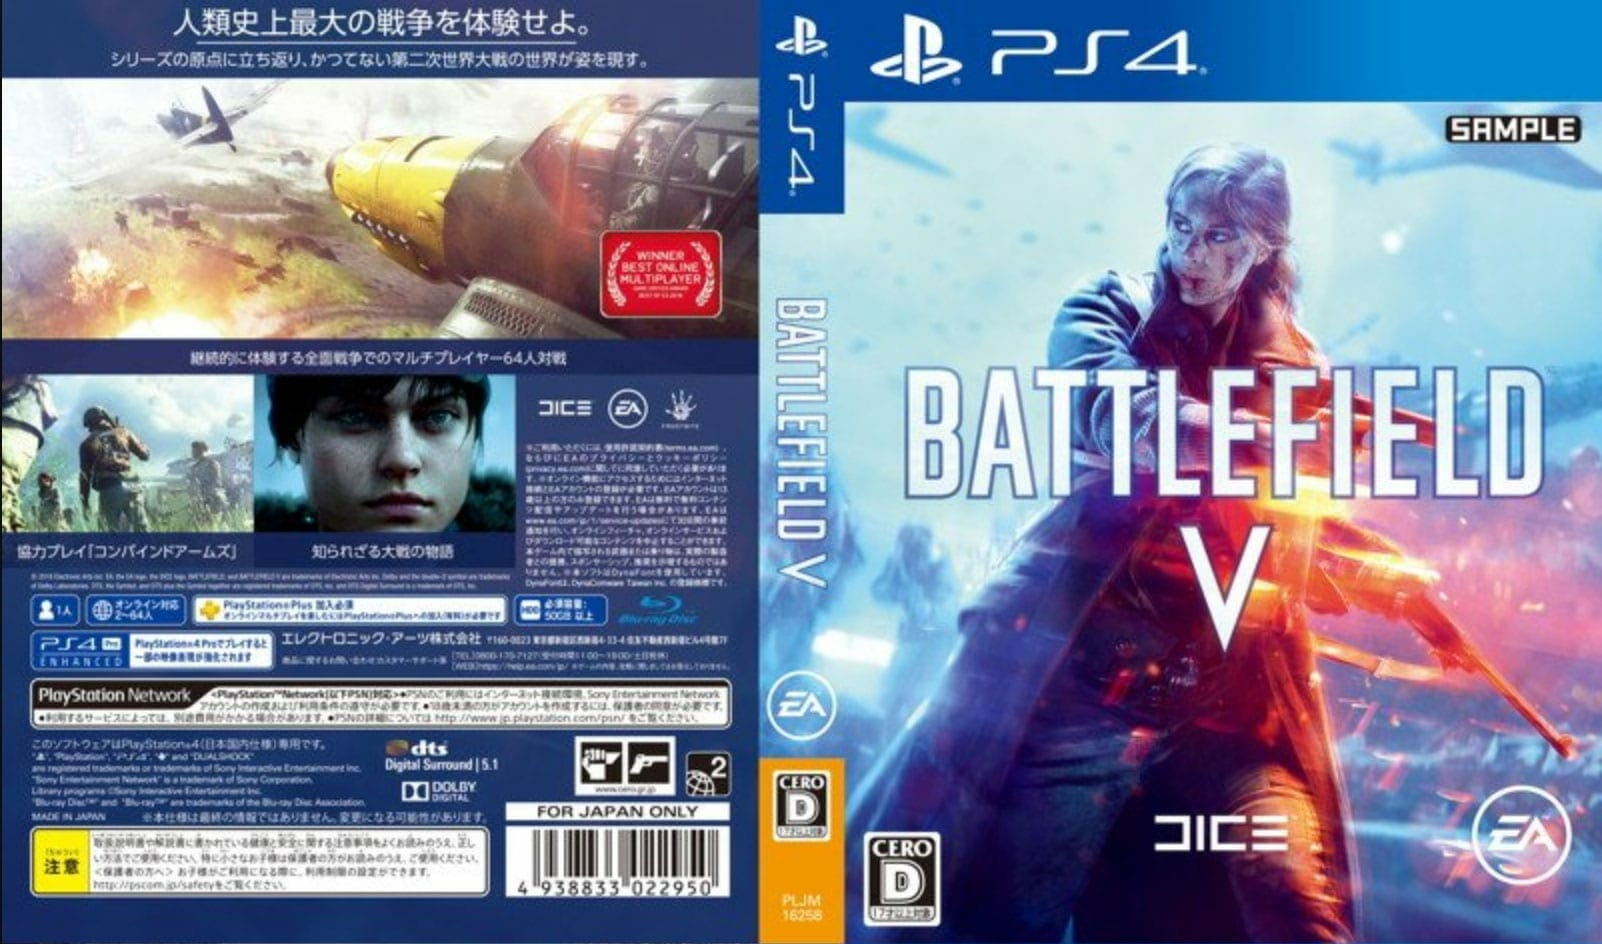 Battlefield V Ps4 File Size Is 50gb Revealed By Cover Box Art